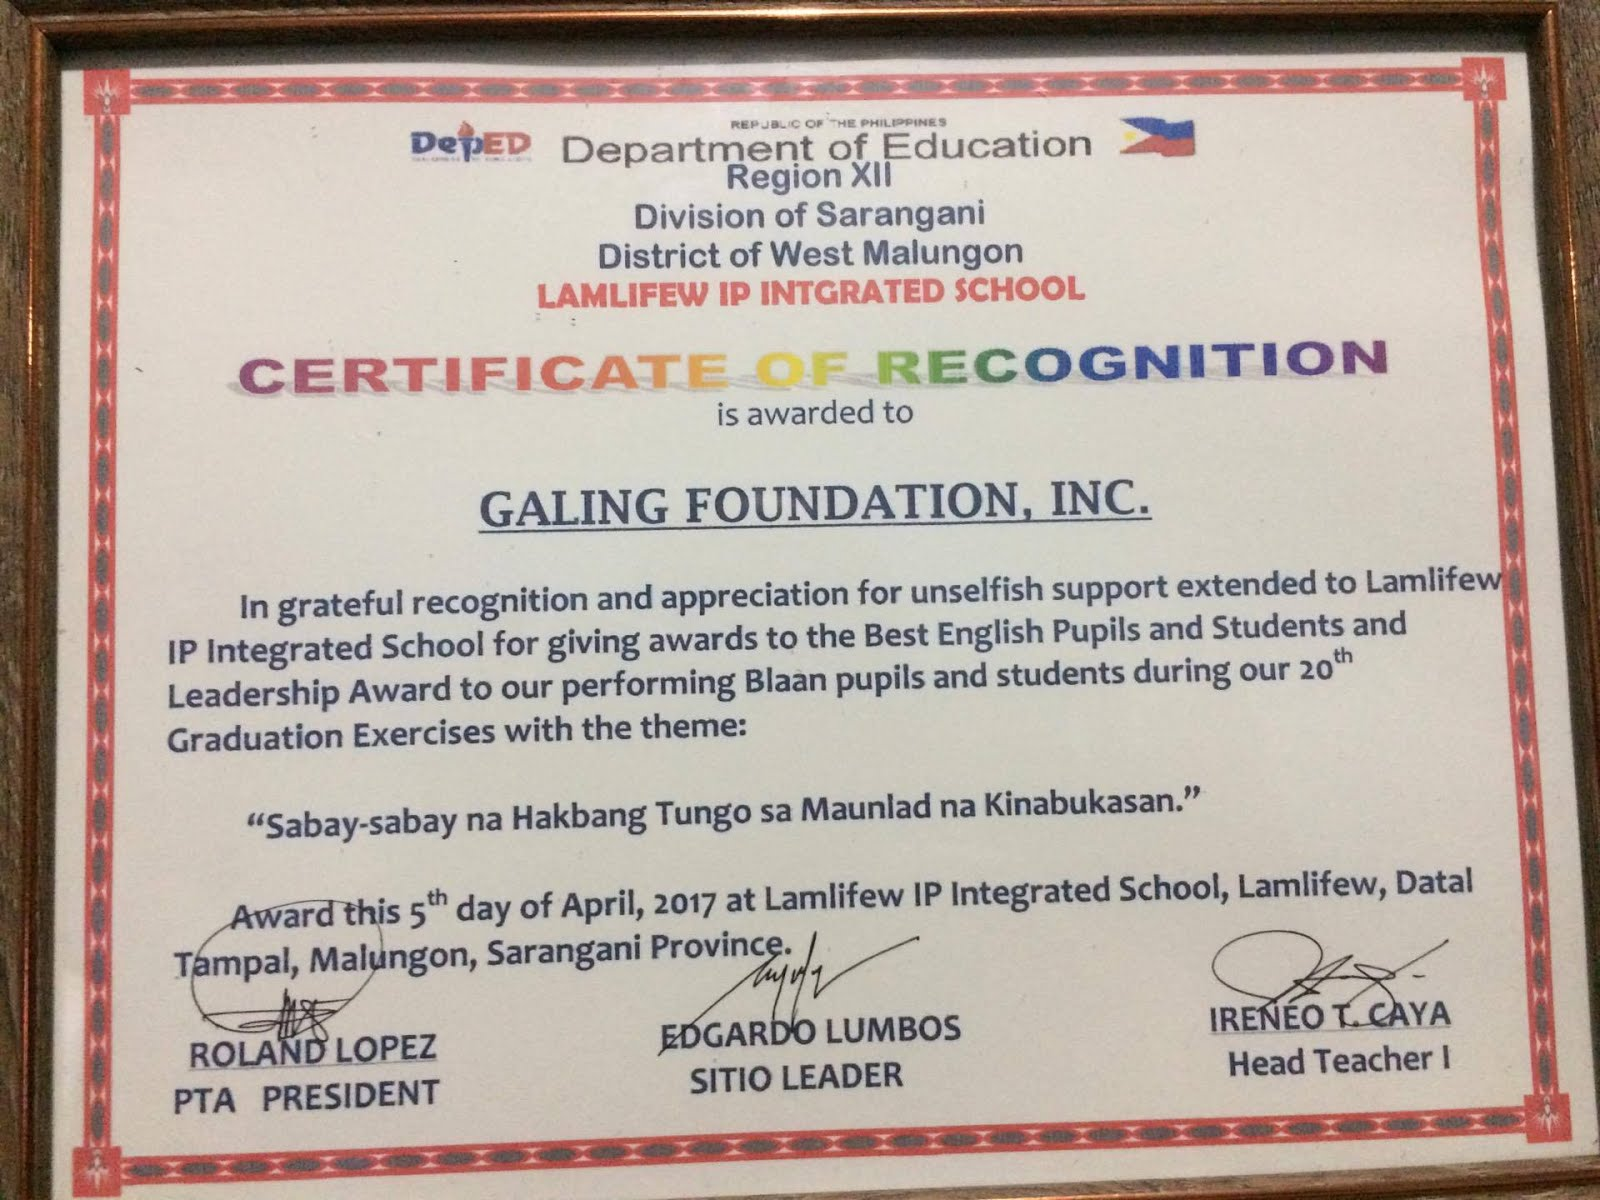 galing foundation  inc  mindanao outreach  certificate of recognition for gfi from lnhs